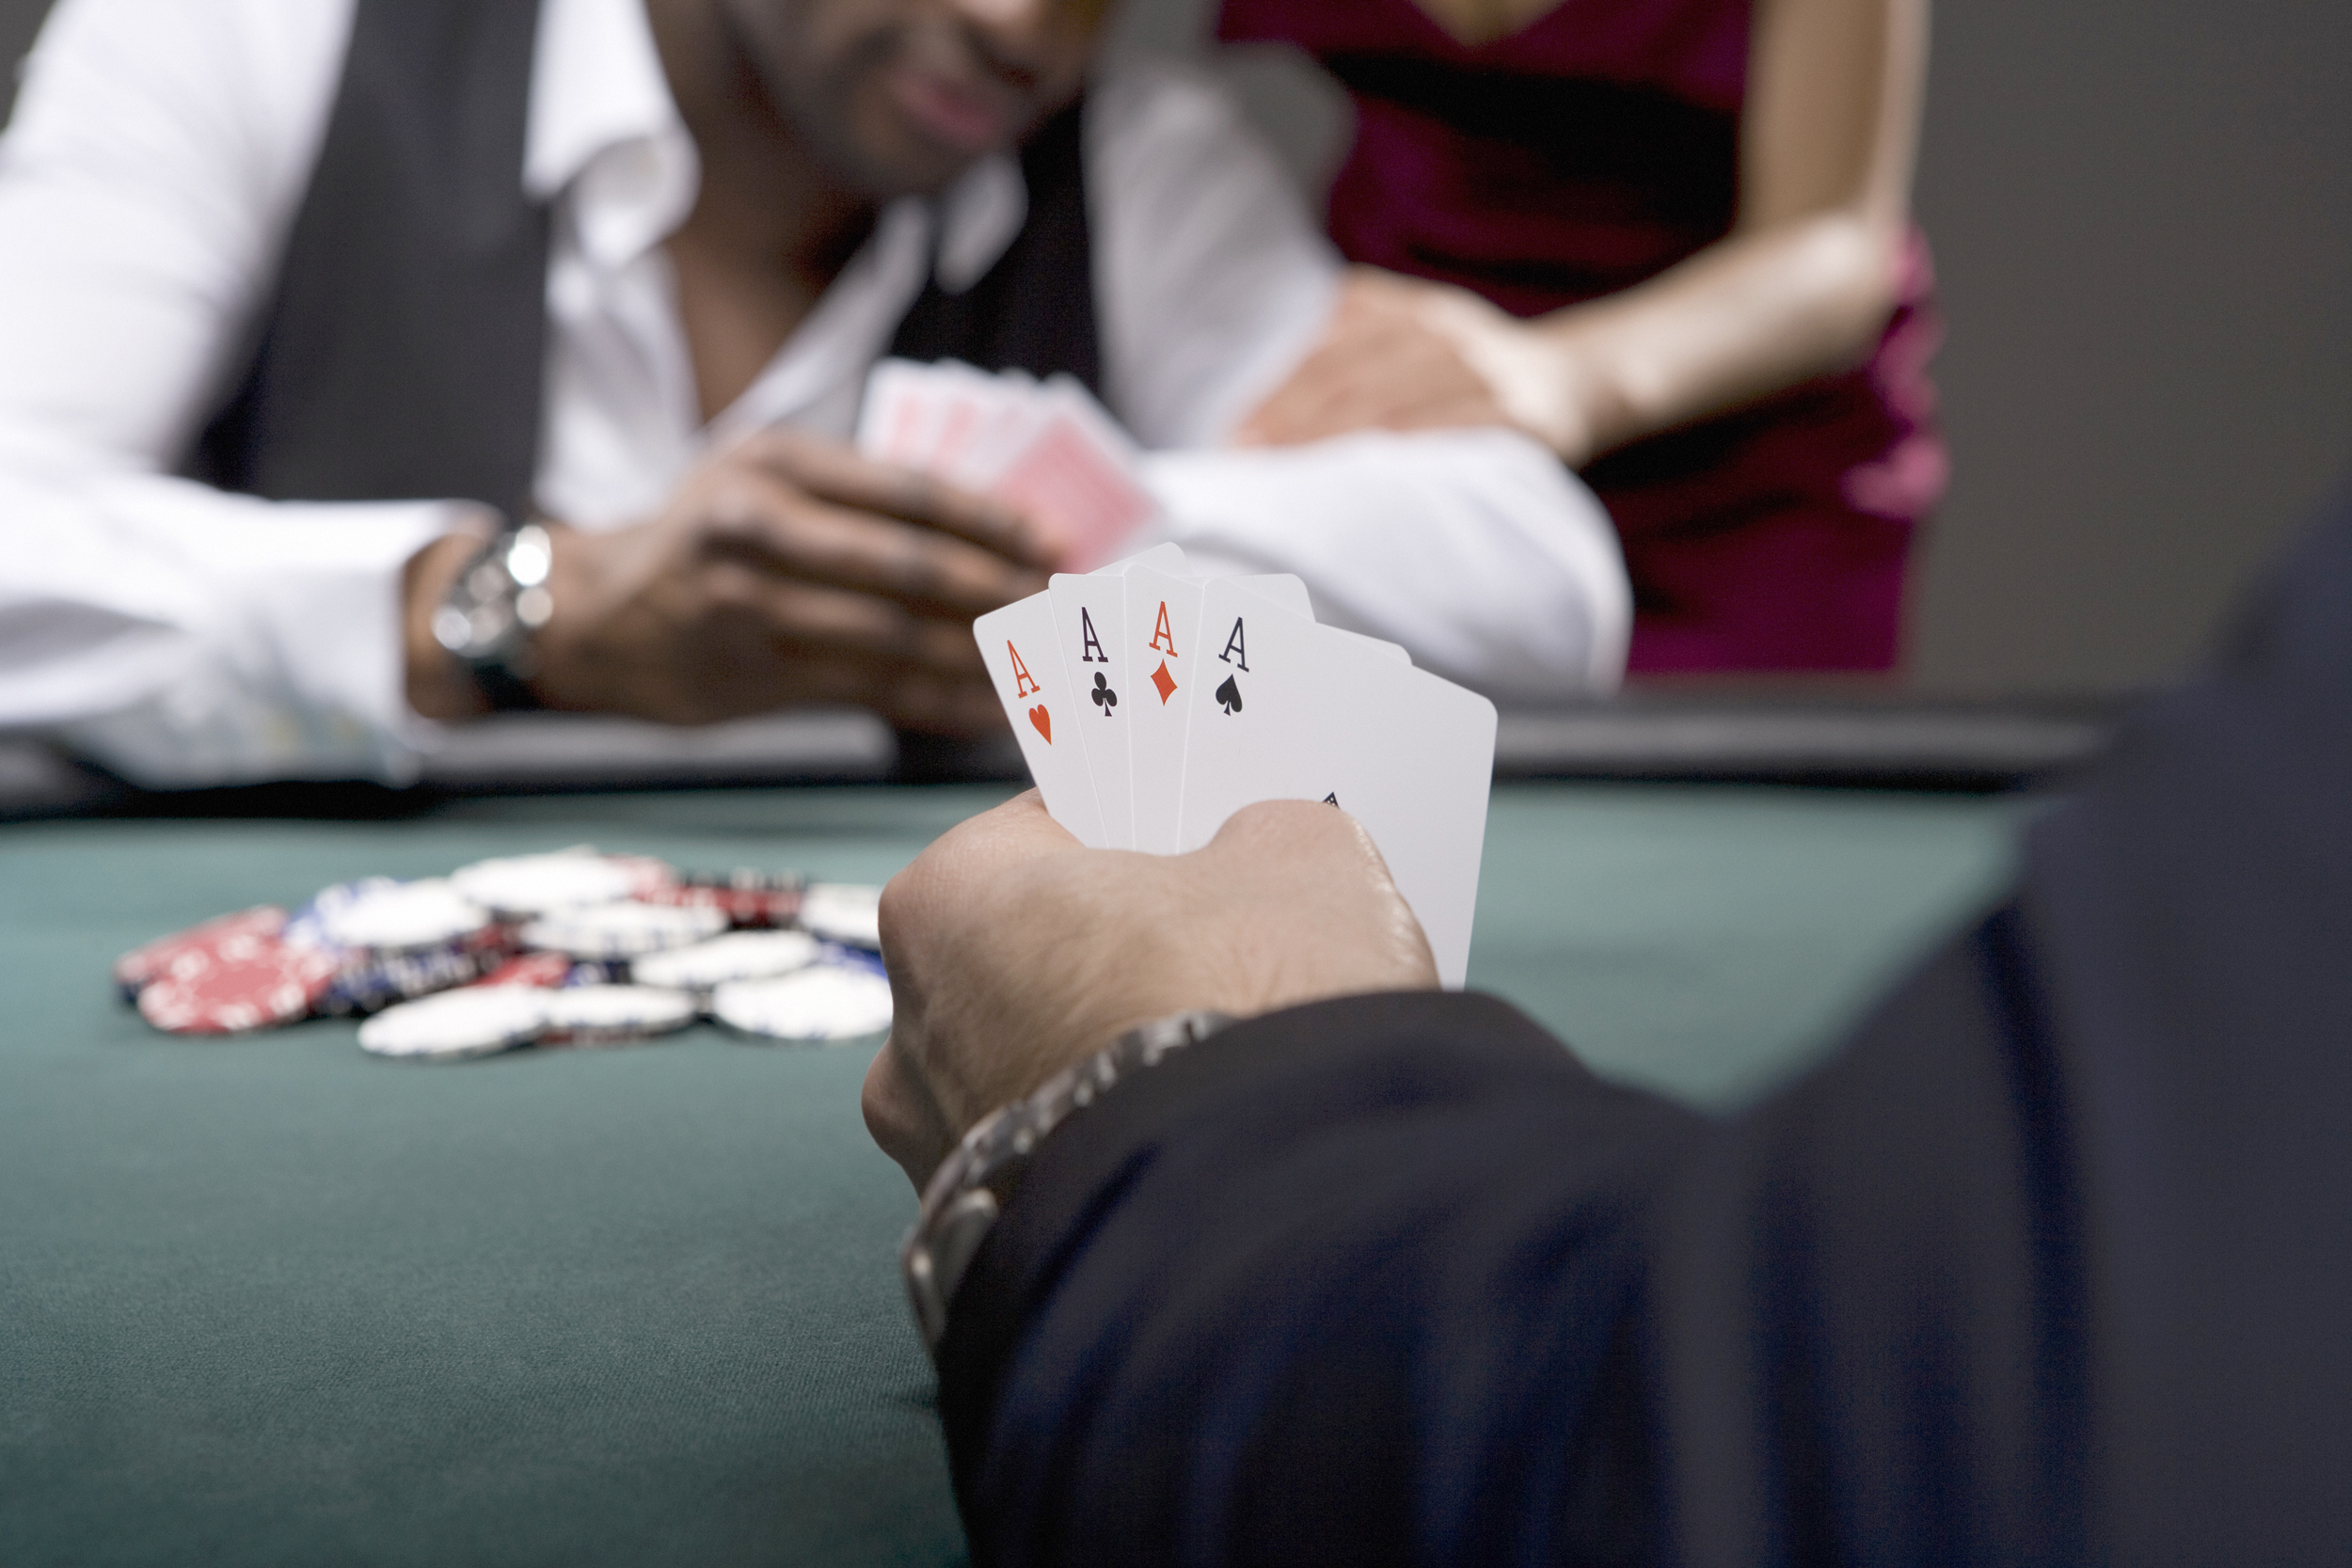 A Professional Poker Player's Advice on Negotiating a Higher Salary